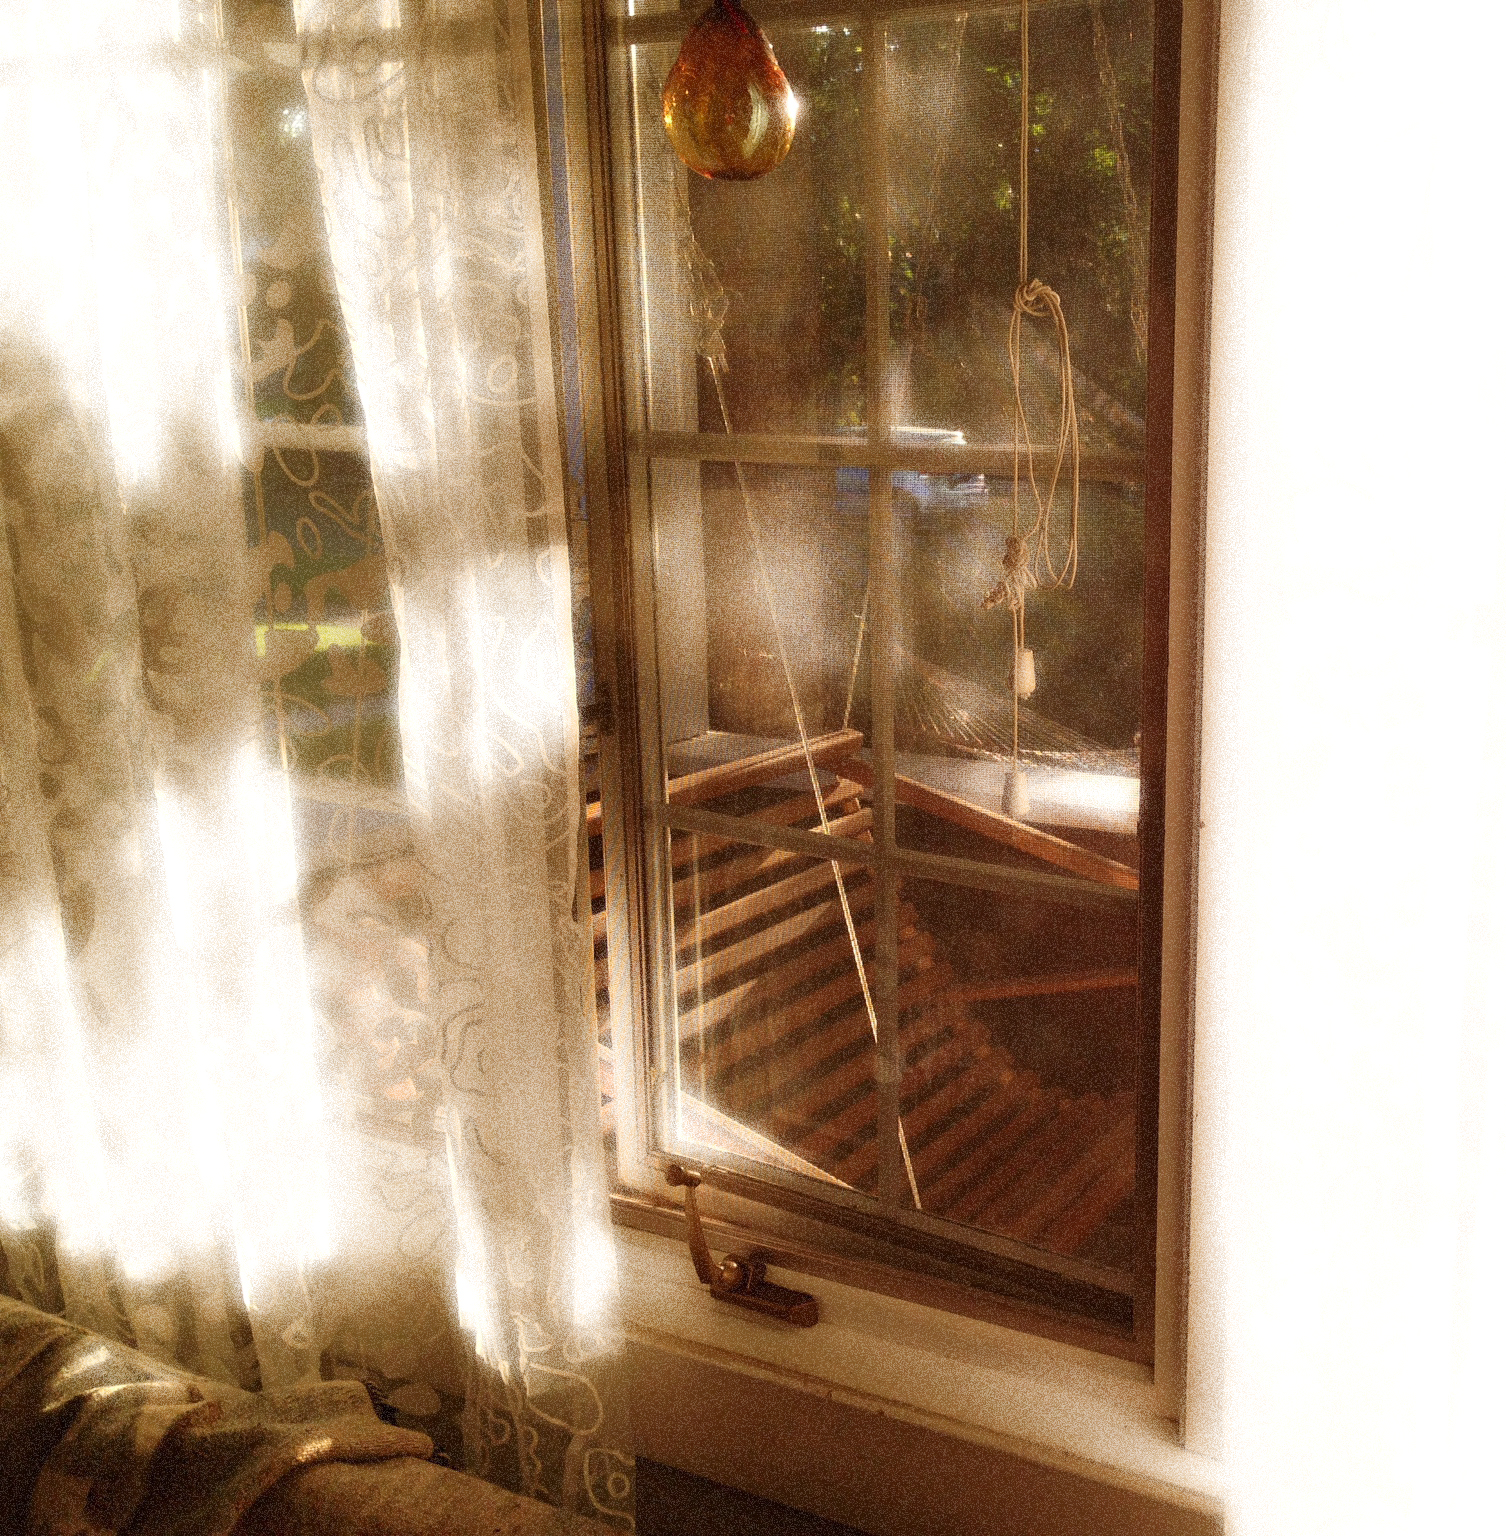 Early Morning Sun Thru Living Room Curtains, VHS 2014-posted July 12, wk 3